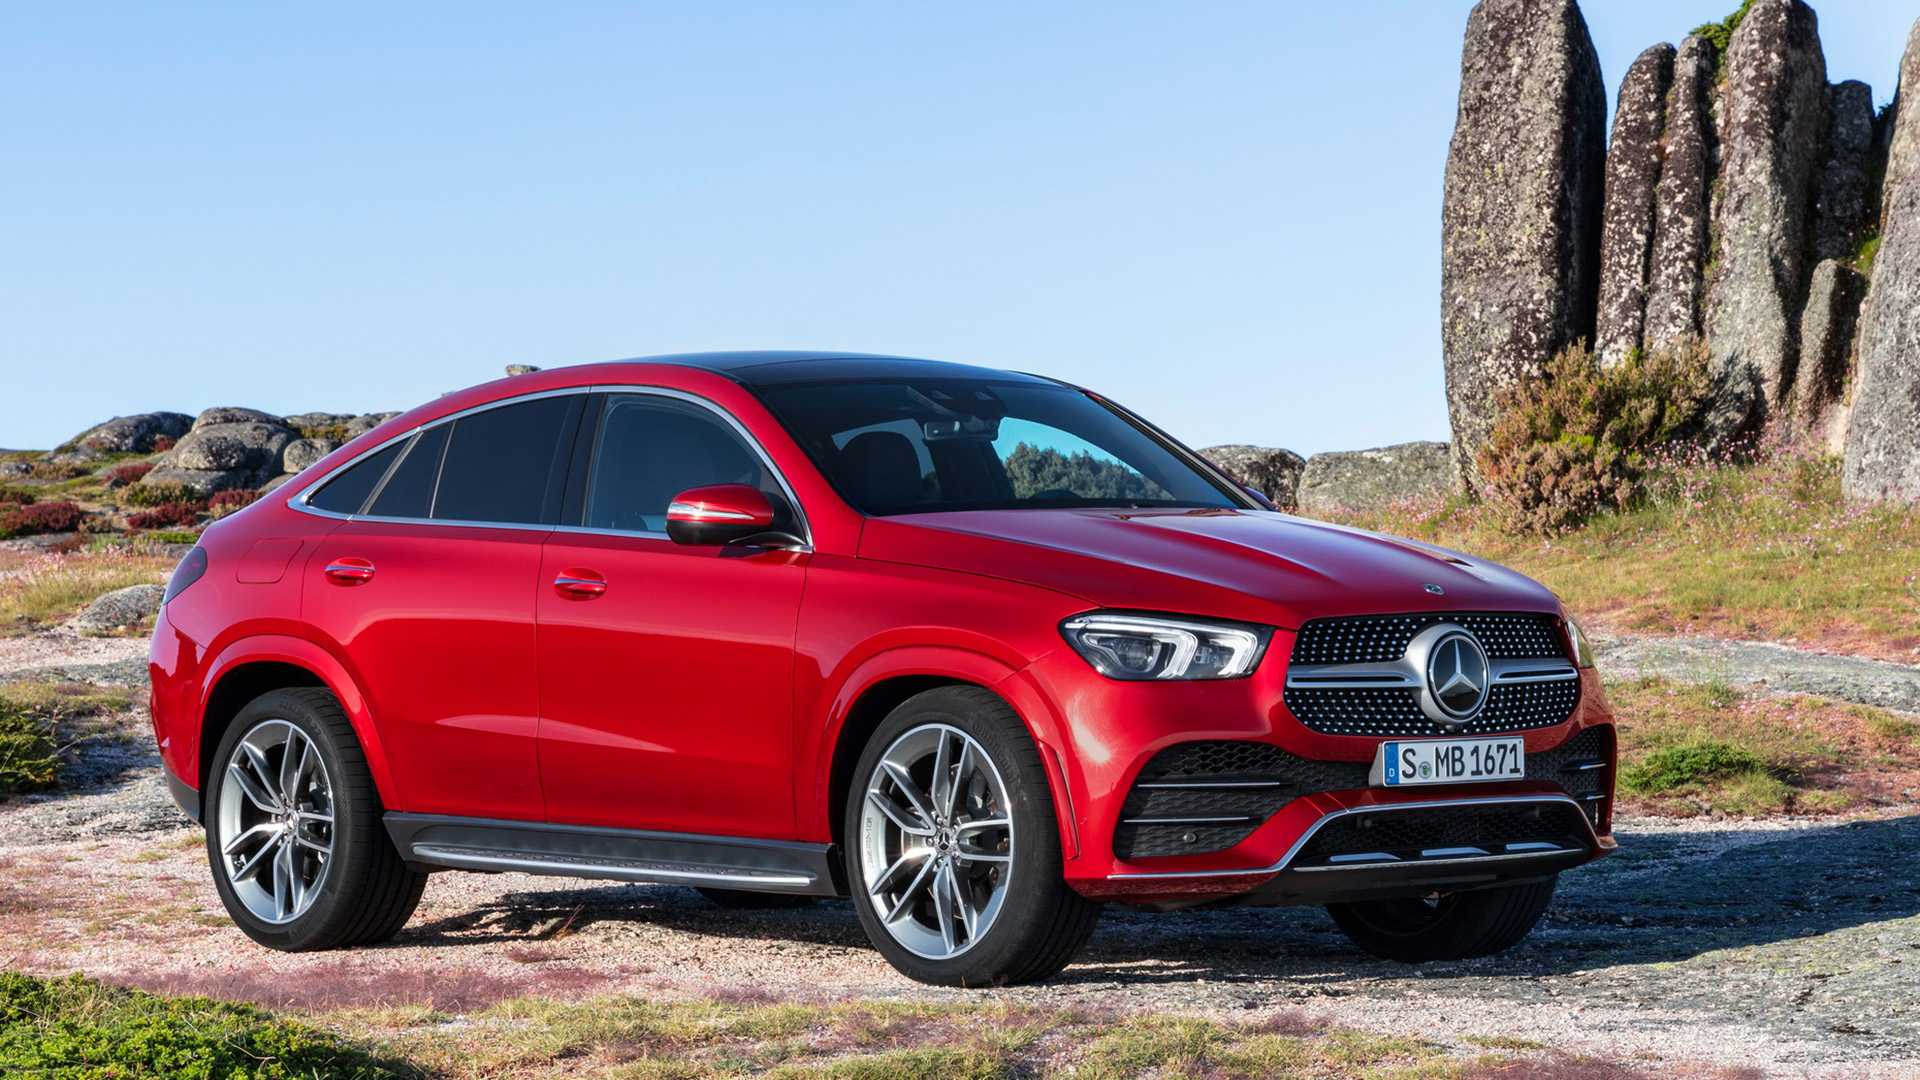 2021 Mercedes-Benz GLE Coupe (Color: Designo Hyacinth Red Metallic) Front Three-Quarter Wallpapers (11)